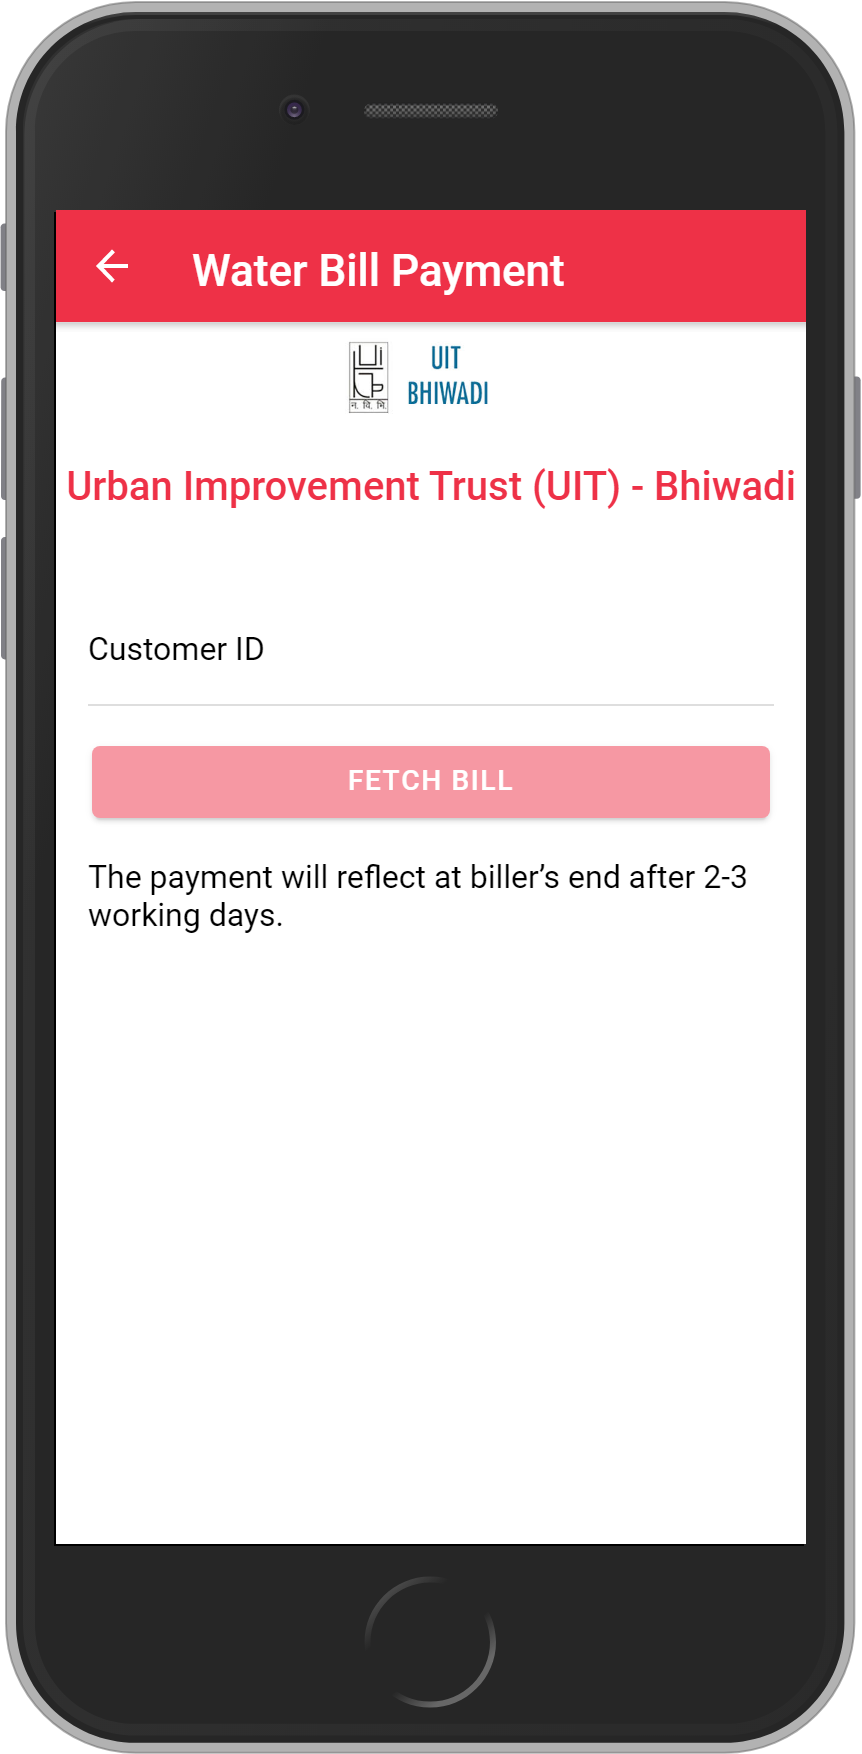 Get UNLIMITED <b>0.1%</b> CASHBACK on Urban Improvement Trust (UIT) – Bhiwadi Bill Payment.